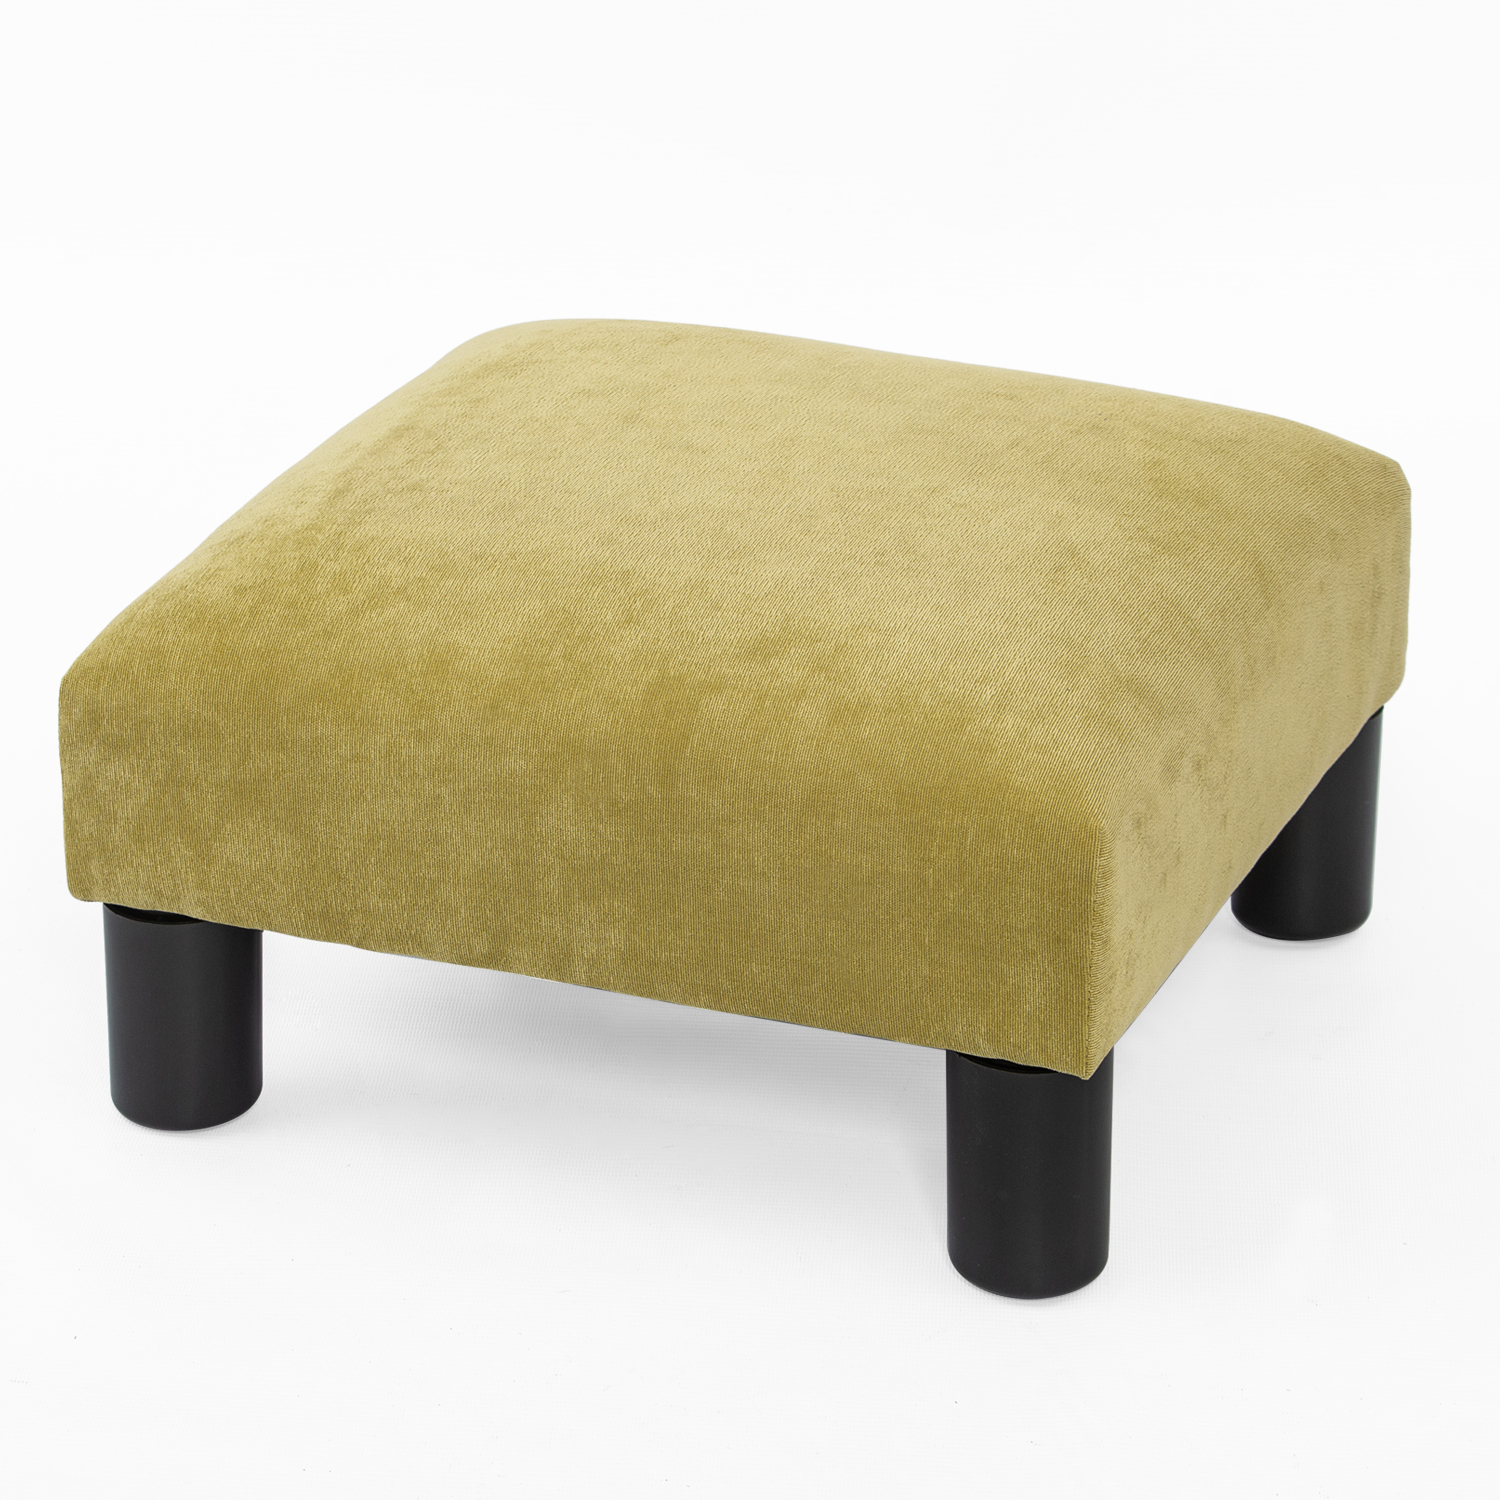 joveco small ottoman with wood legs footstool footrest geometric art y sage green velvet fabric